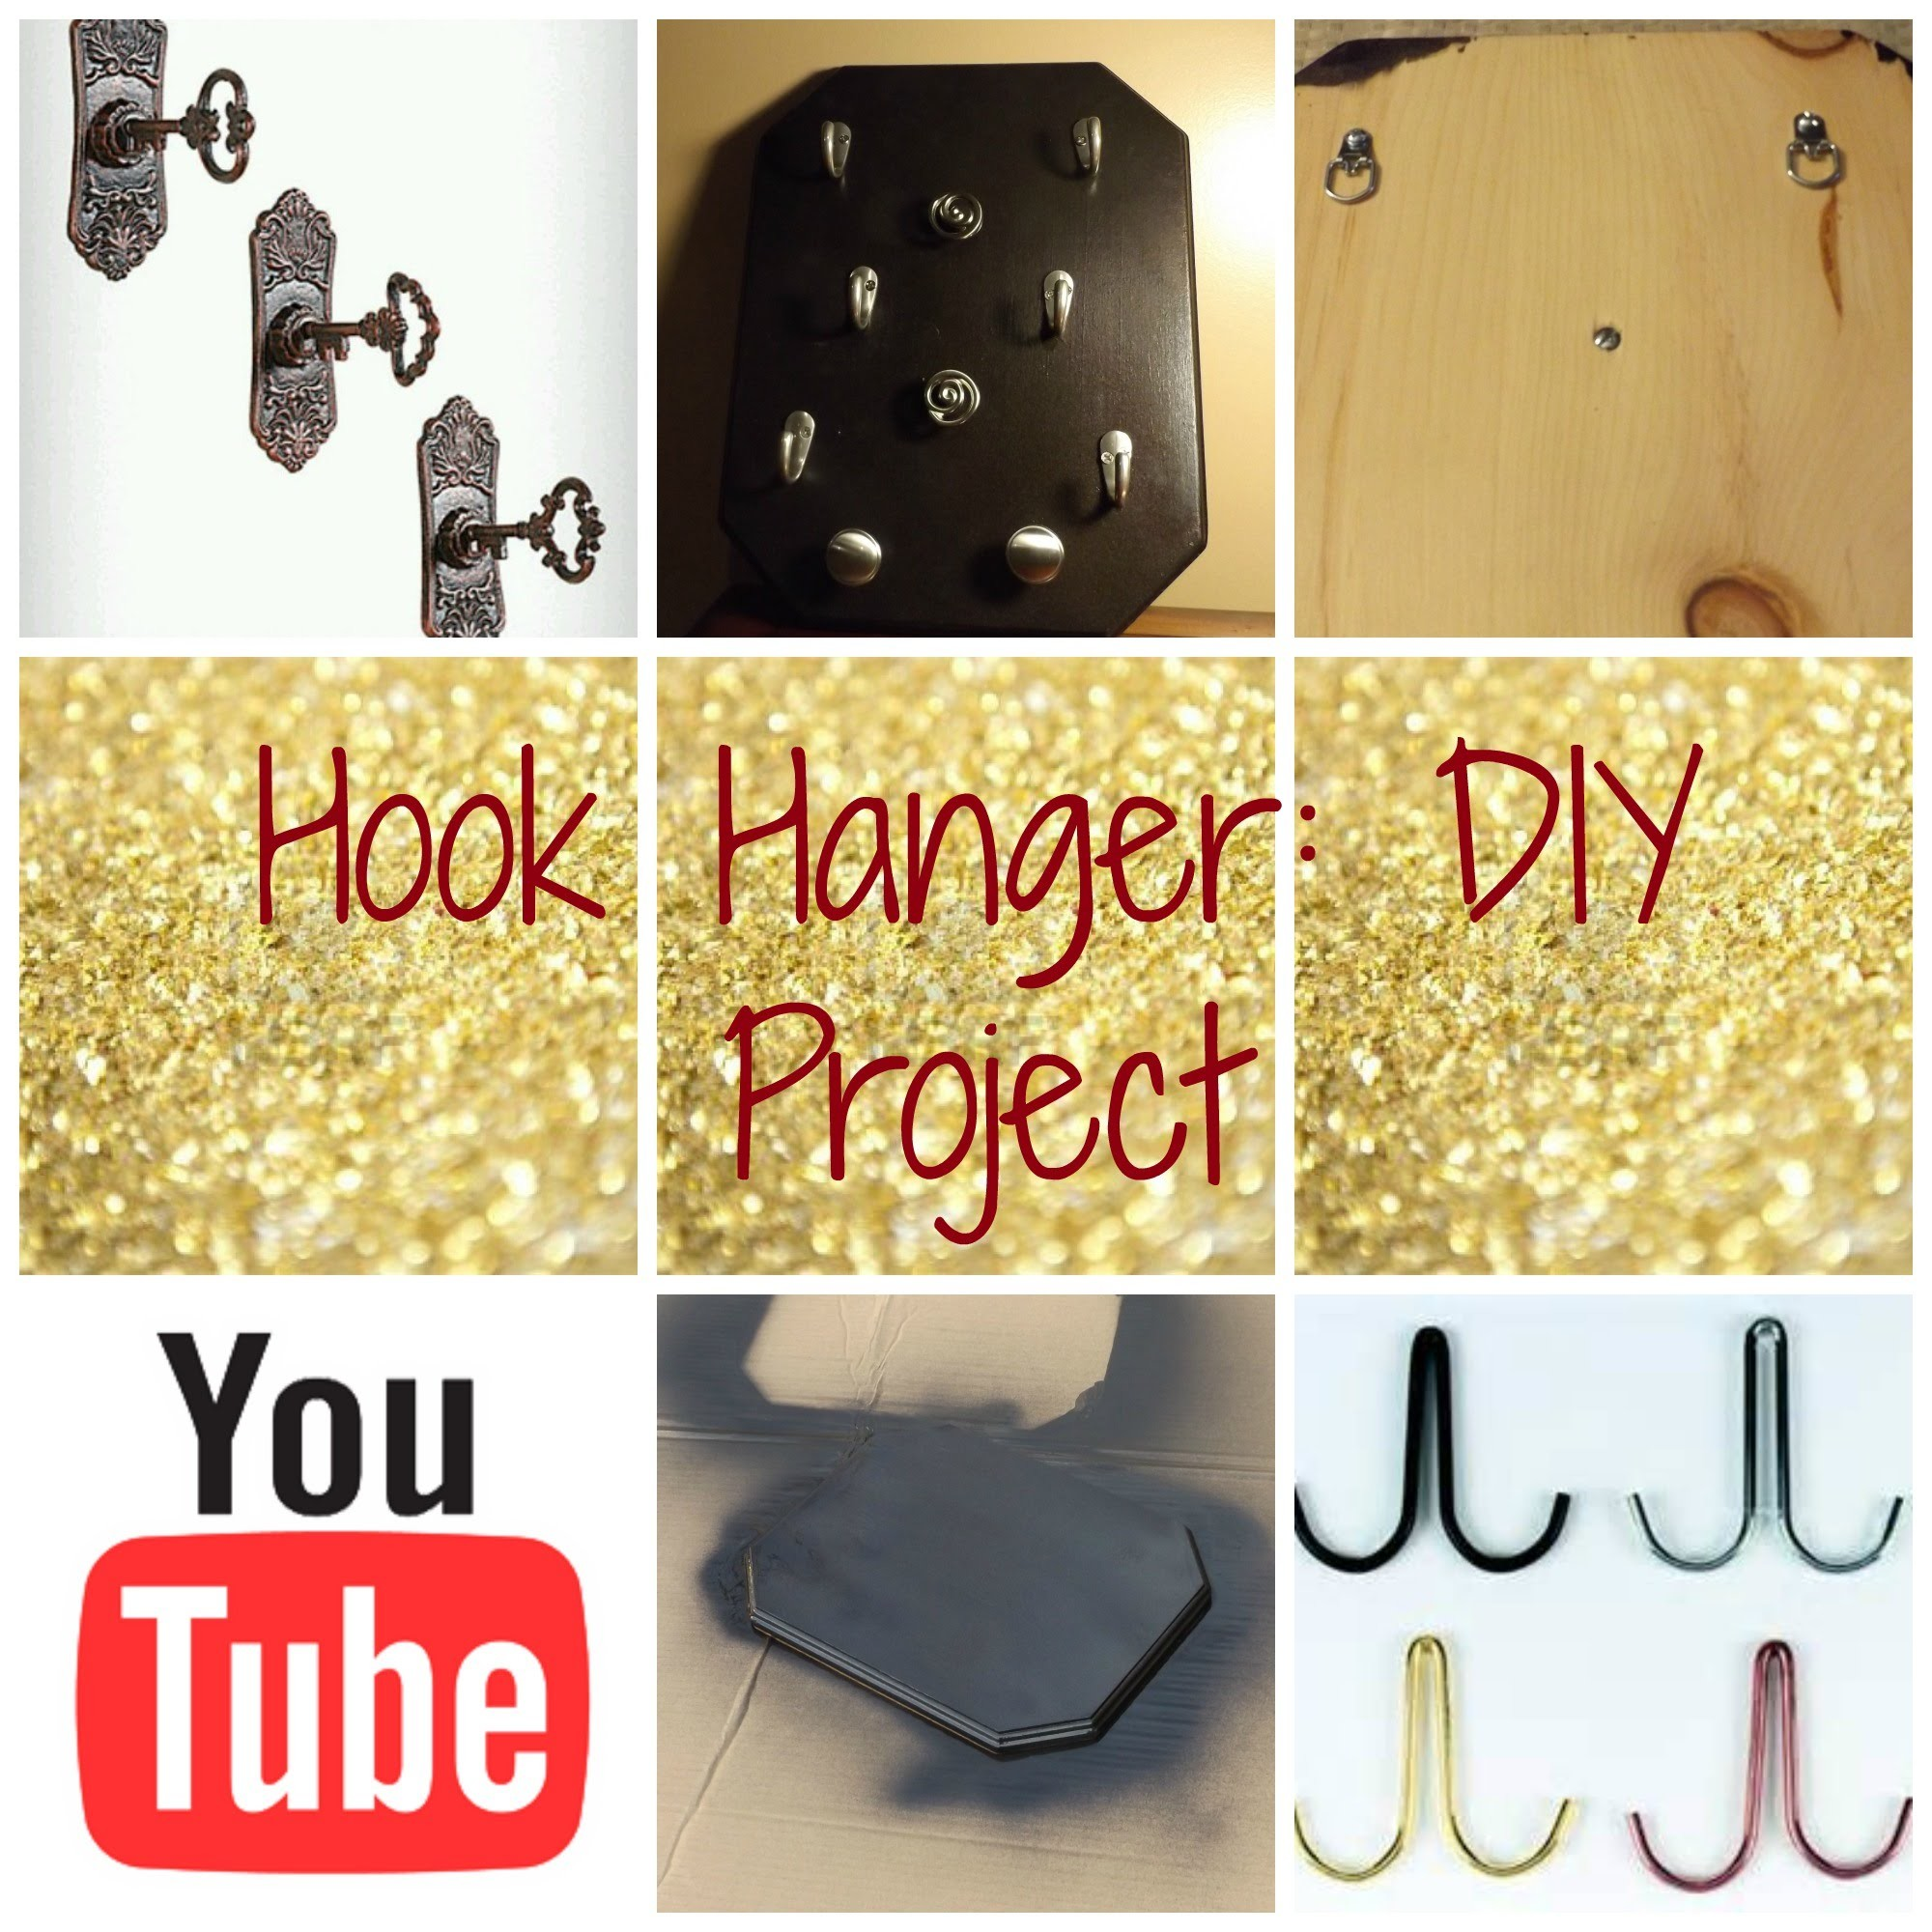 Hook Hanger: DIY Project!